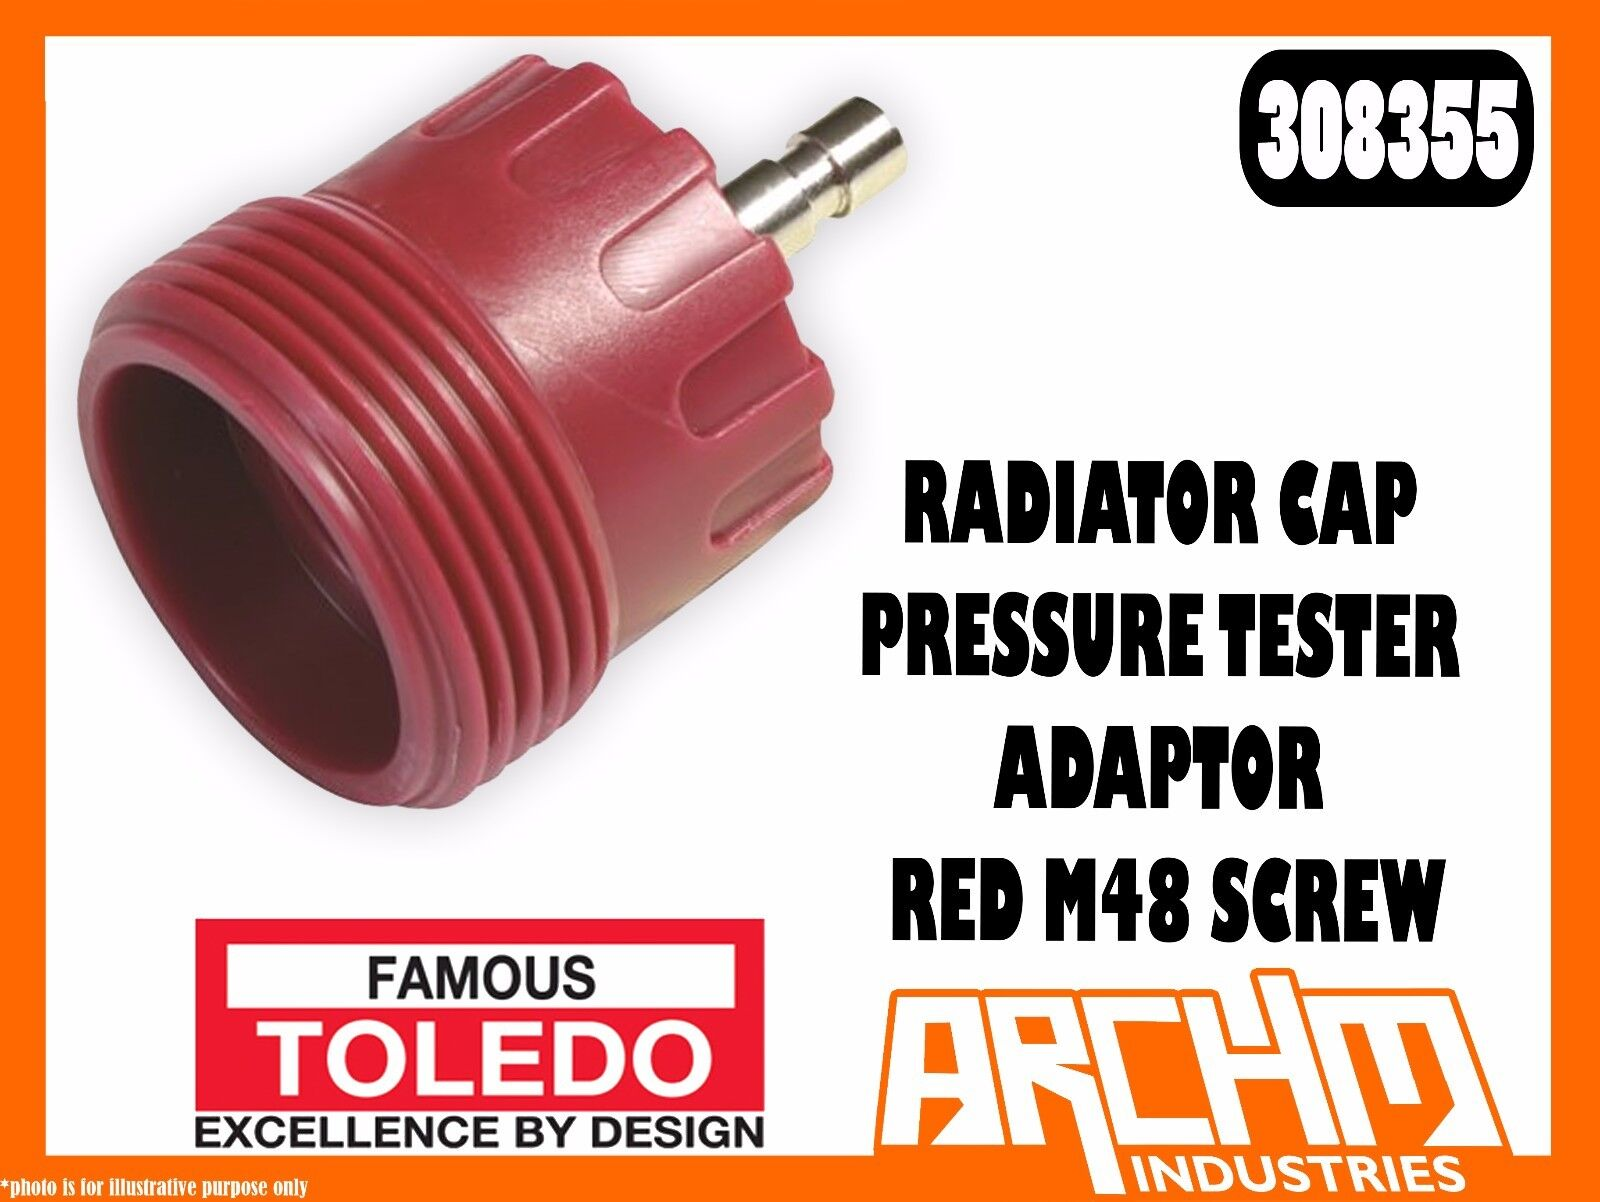 TOLEDO 308355 - RADIATOR CAP PRESSURE TESTER ADAPTOR - RED M48 SCREW